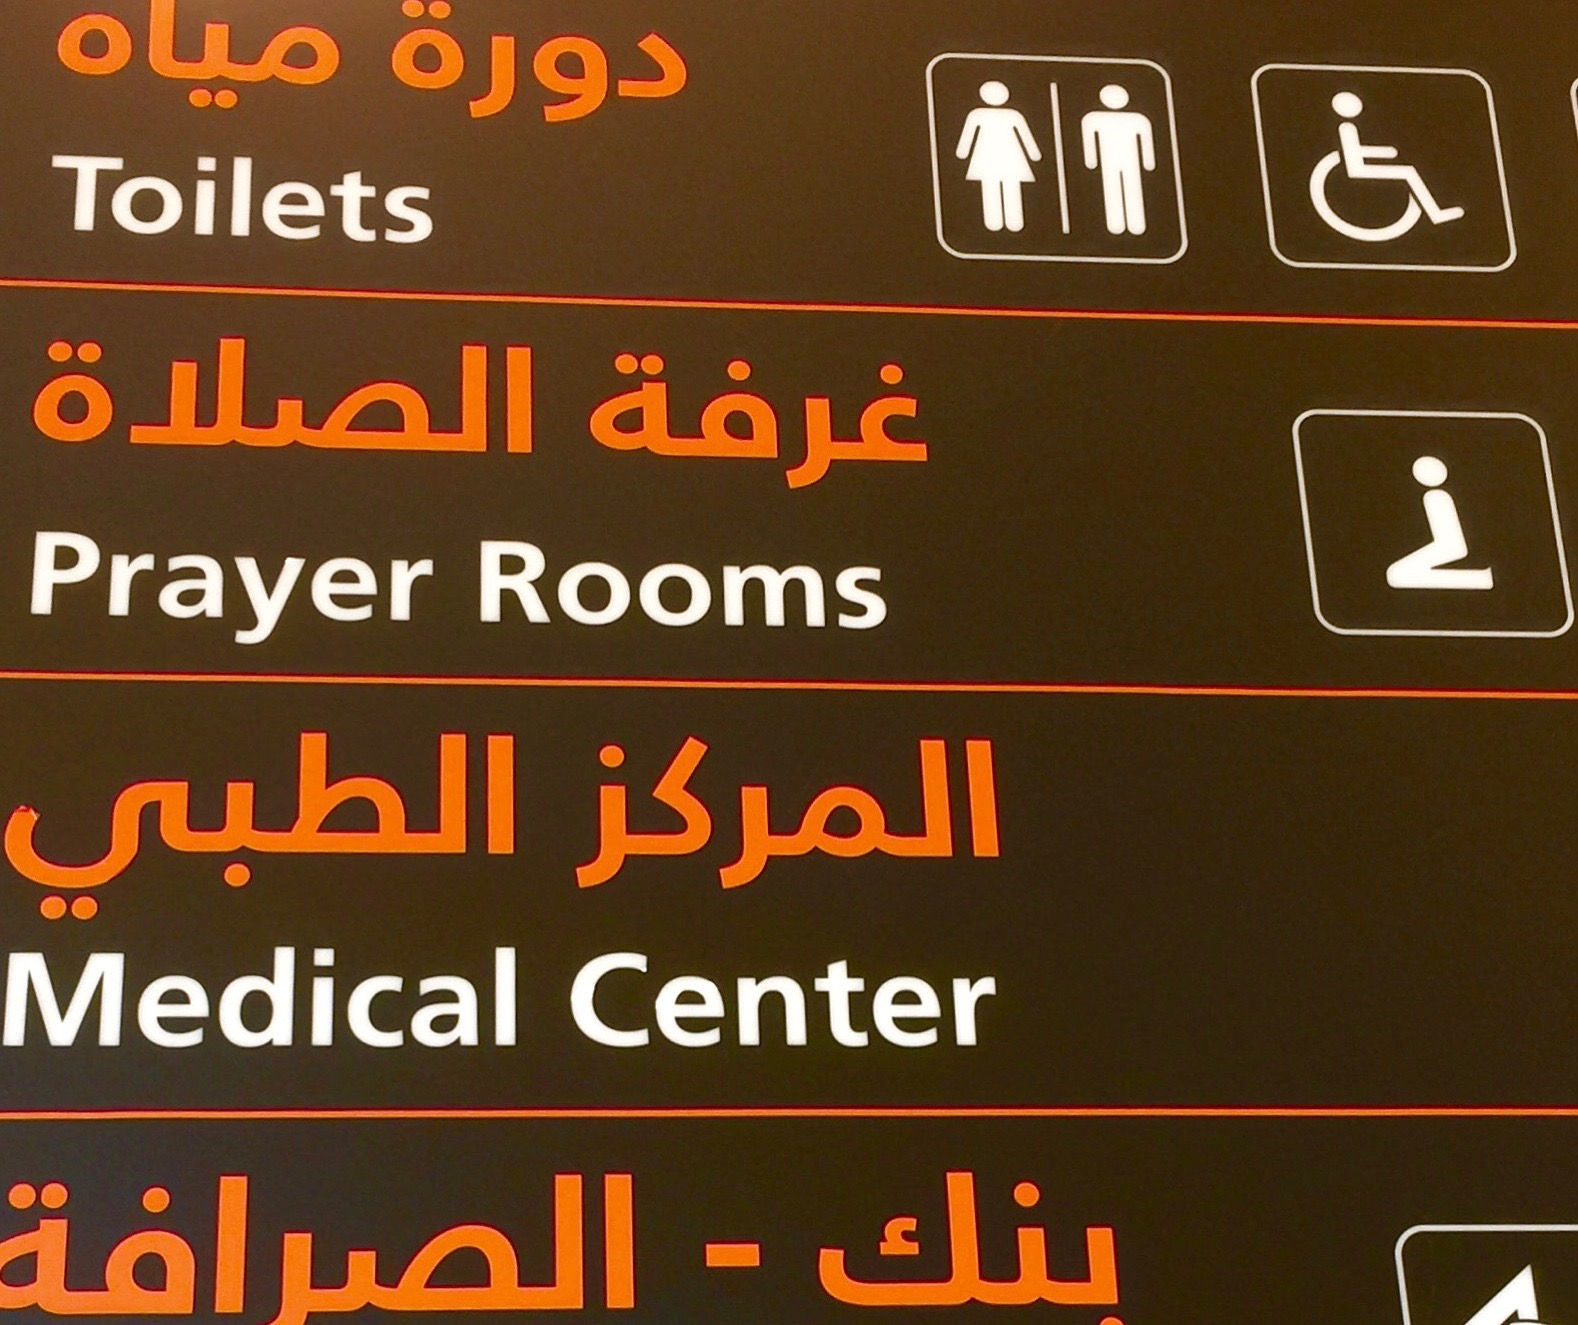 Prayer valued in Jordan